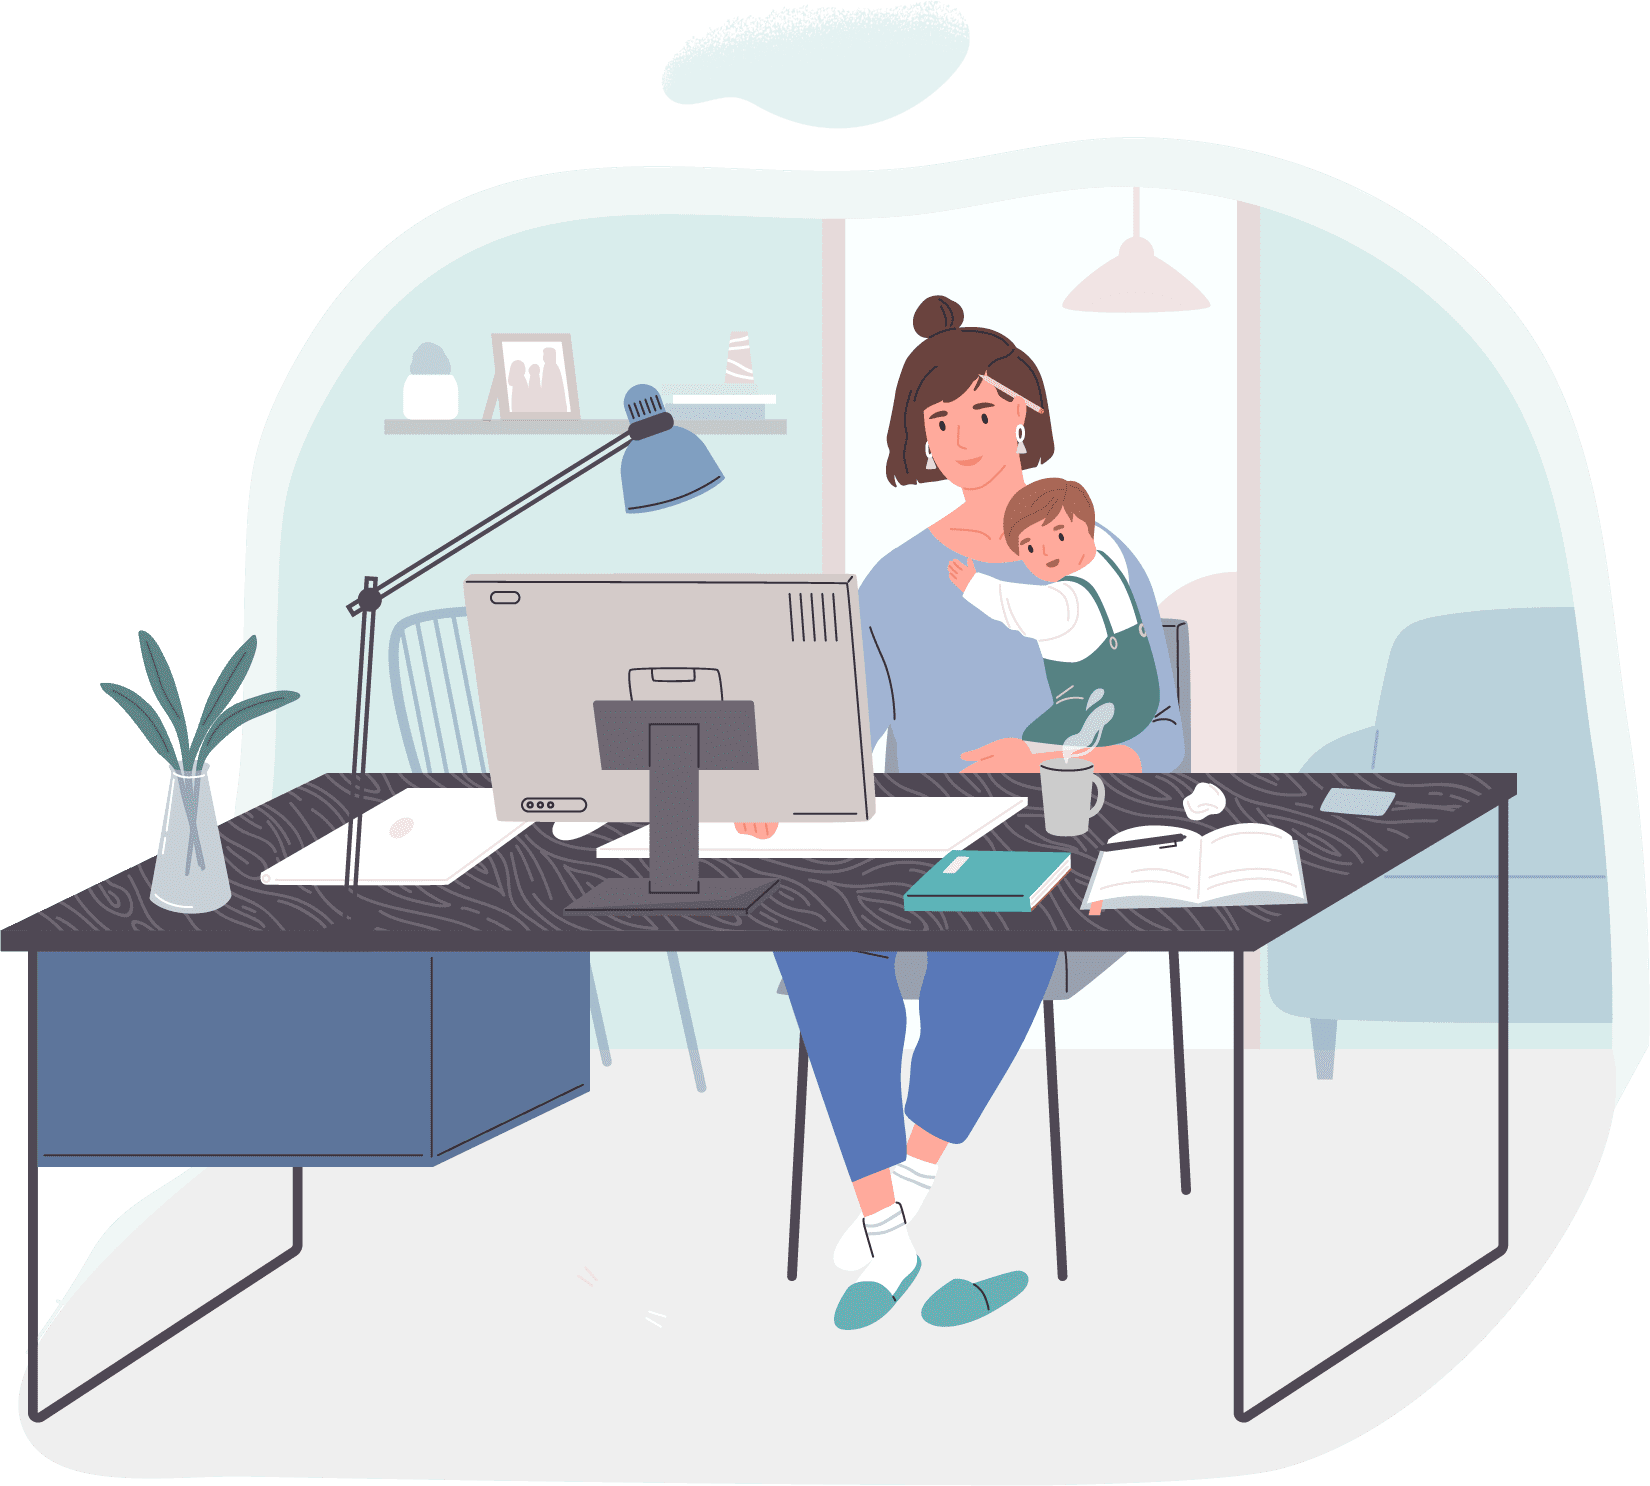 Asset 6 - Working from Home for Beginners: Tips from a WFH Veteran